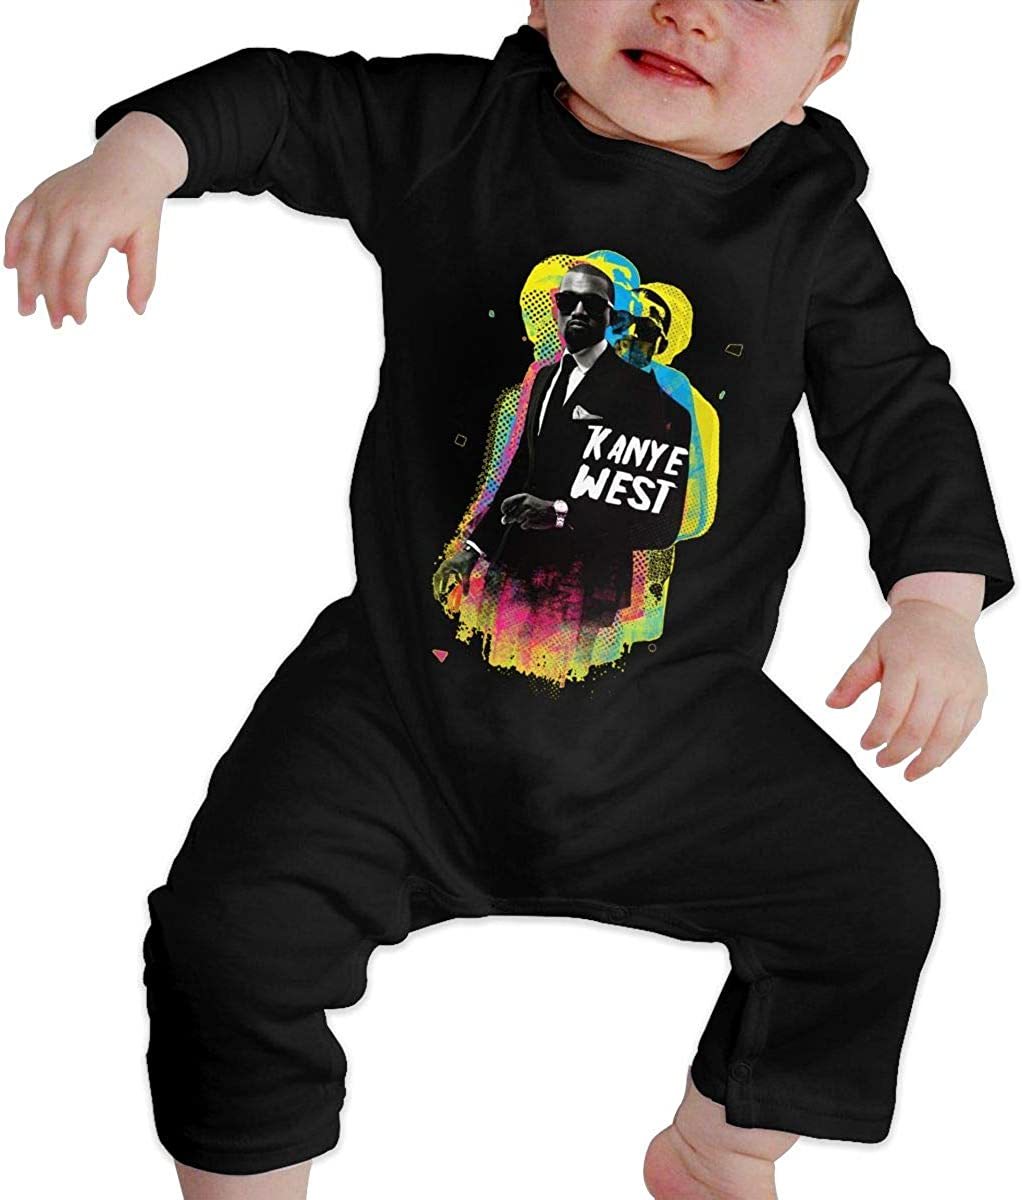 Qq1-asd-store Kanye West Boys//Girls Baby Cotton Long Sleeve Romper Warm Bodysuit